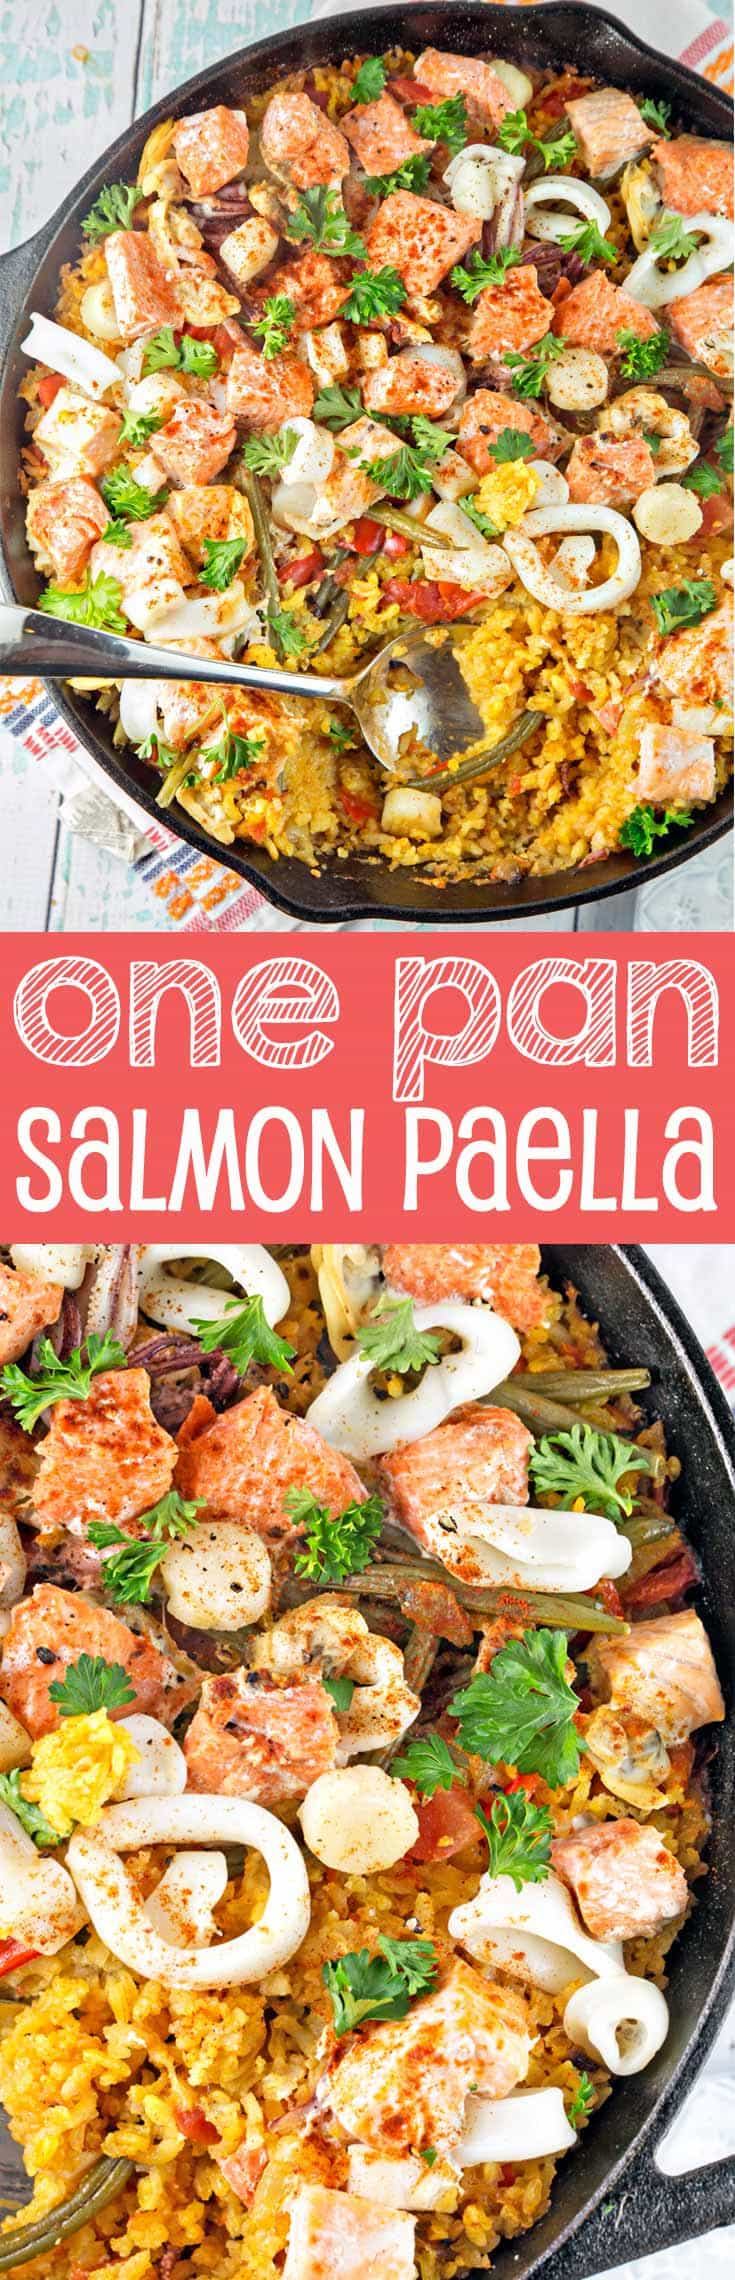 One Pan Salmon Paella: Tired of boring salmon? Try something new and different with one pan salmon paella. Made with easy-to-find ingredients, this is a delicious, heart-healthy dinner choice. {Bunsen Burner Bakery}